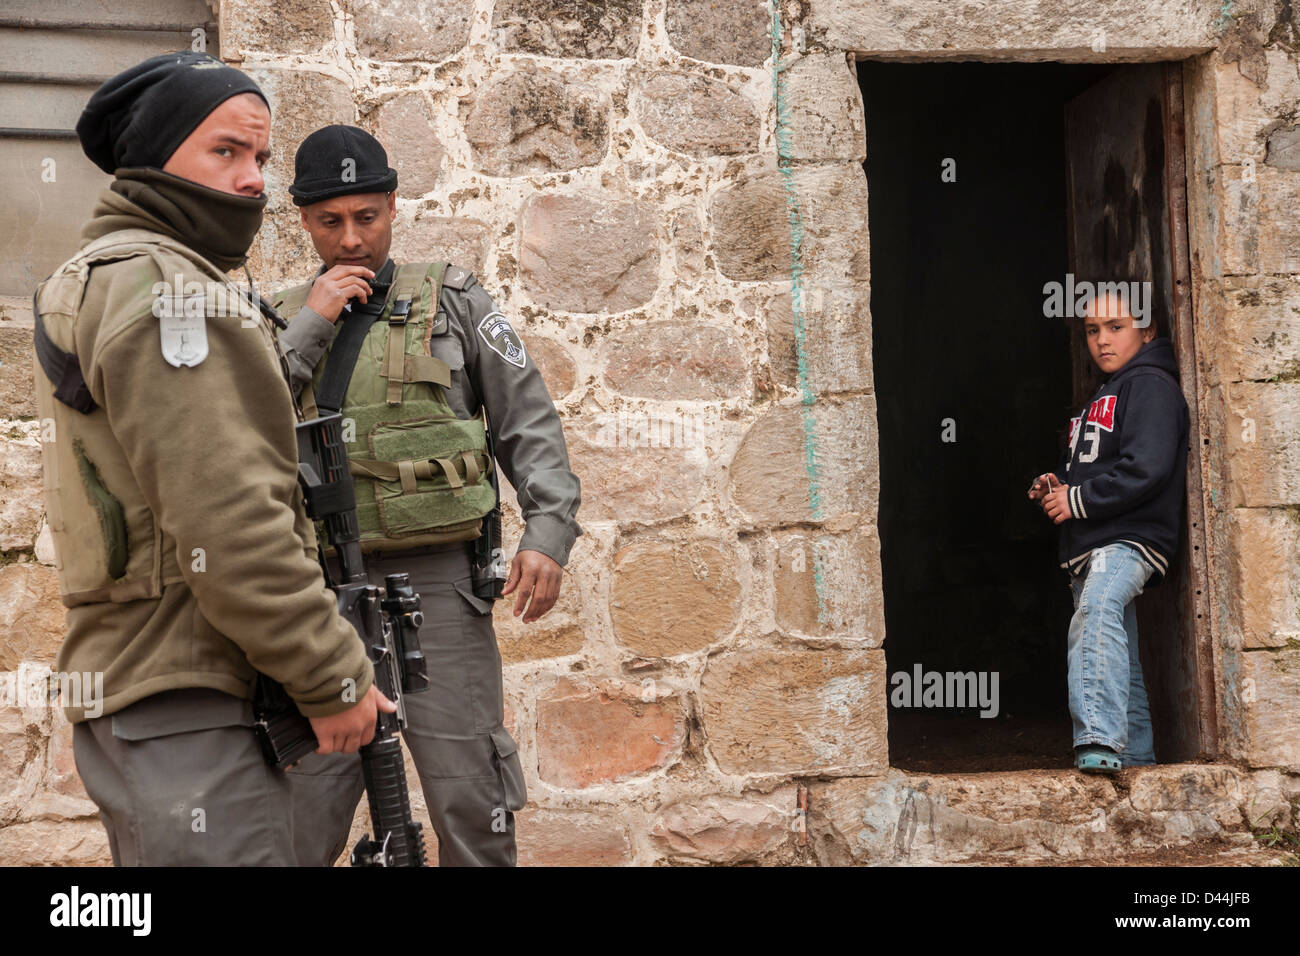 Hebron, West Bank, Israel. A Palestinian girl looks at two Israeli Border Guards. - Stock Image